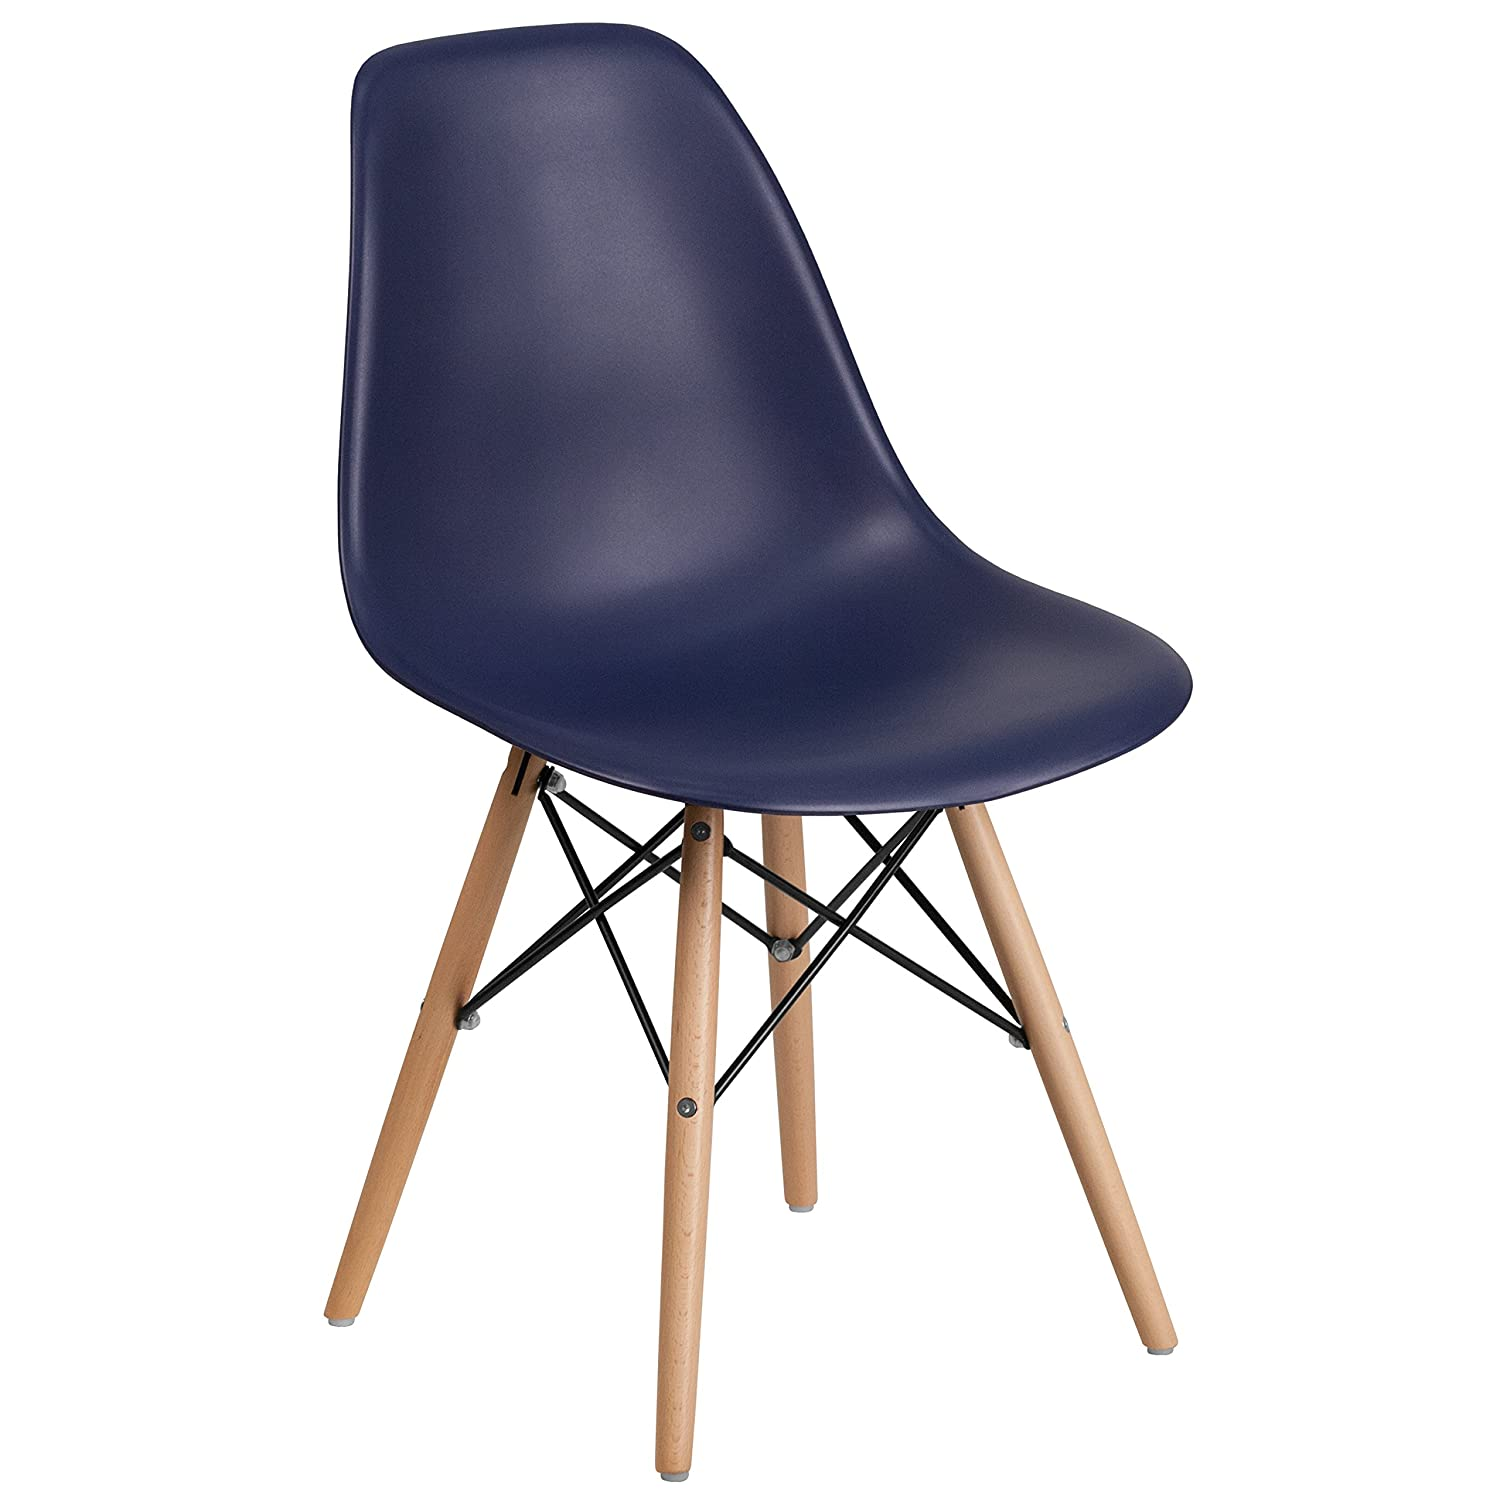 Flash Furniture Elon Series Navy Plastic Chair with Wooden Legs